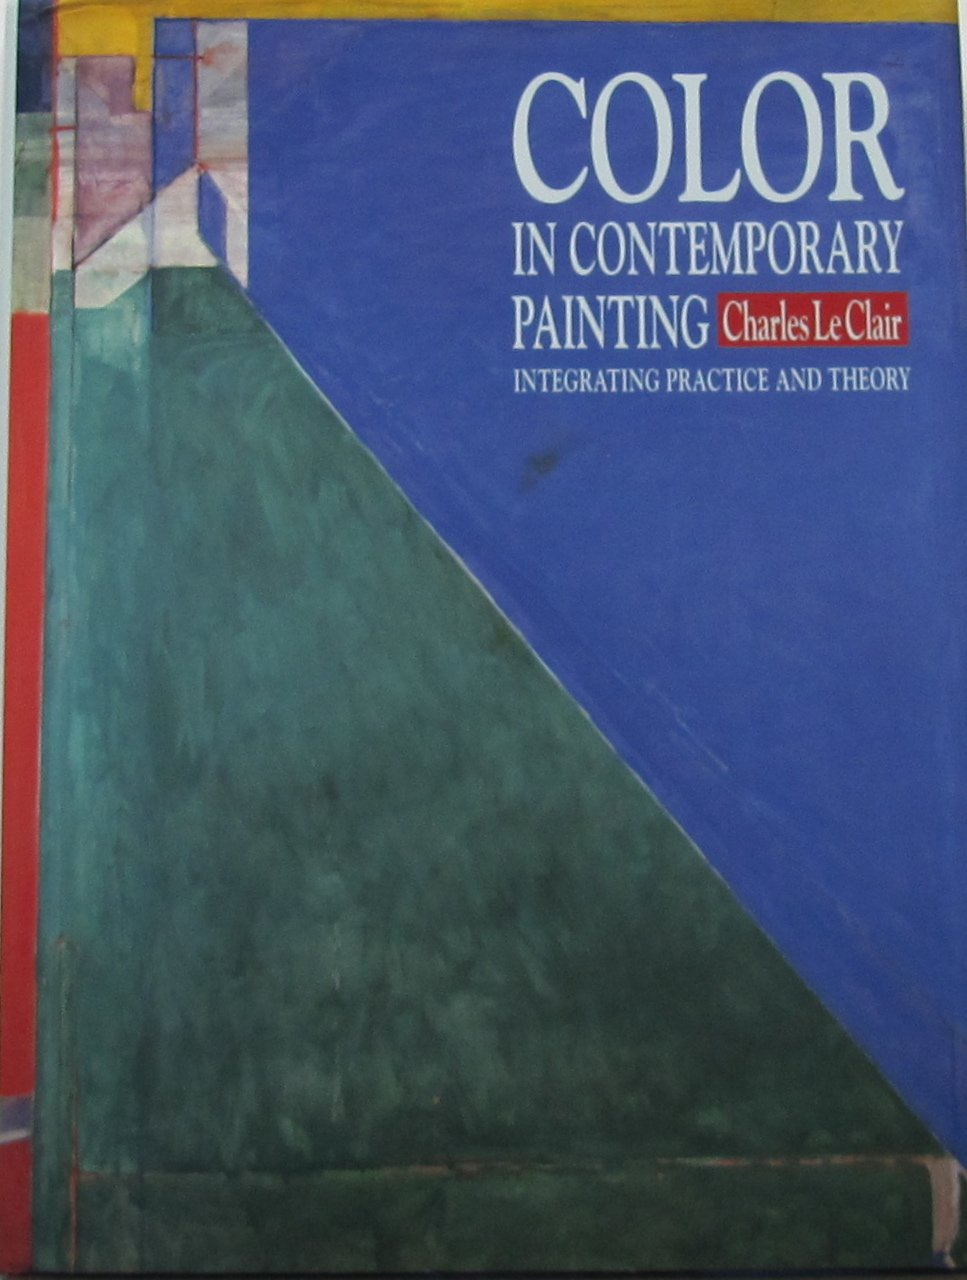 Color in Contemporary Painting: Integrating Practice and Theory